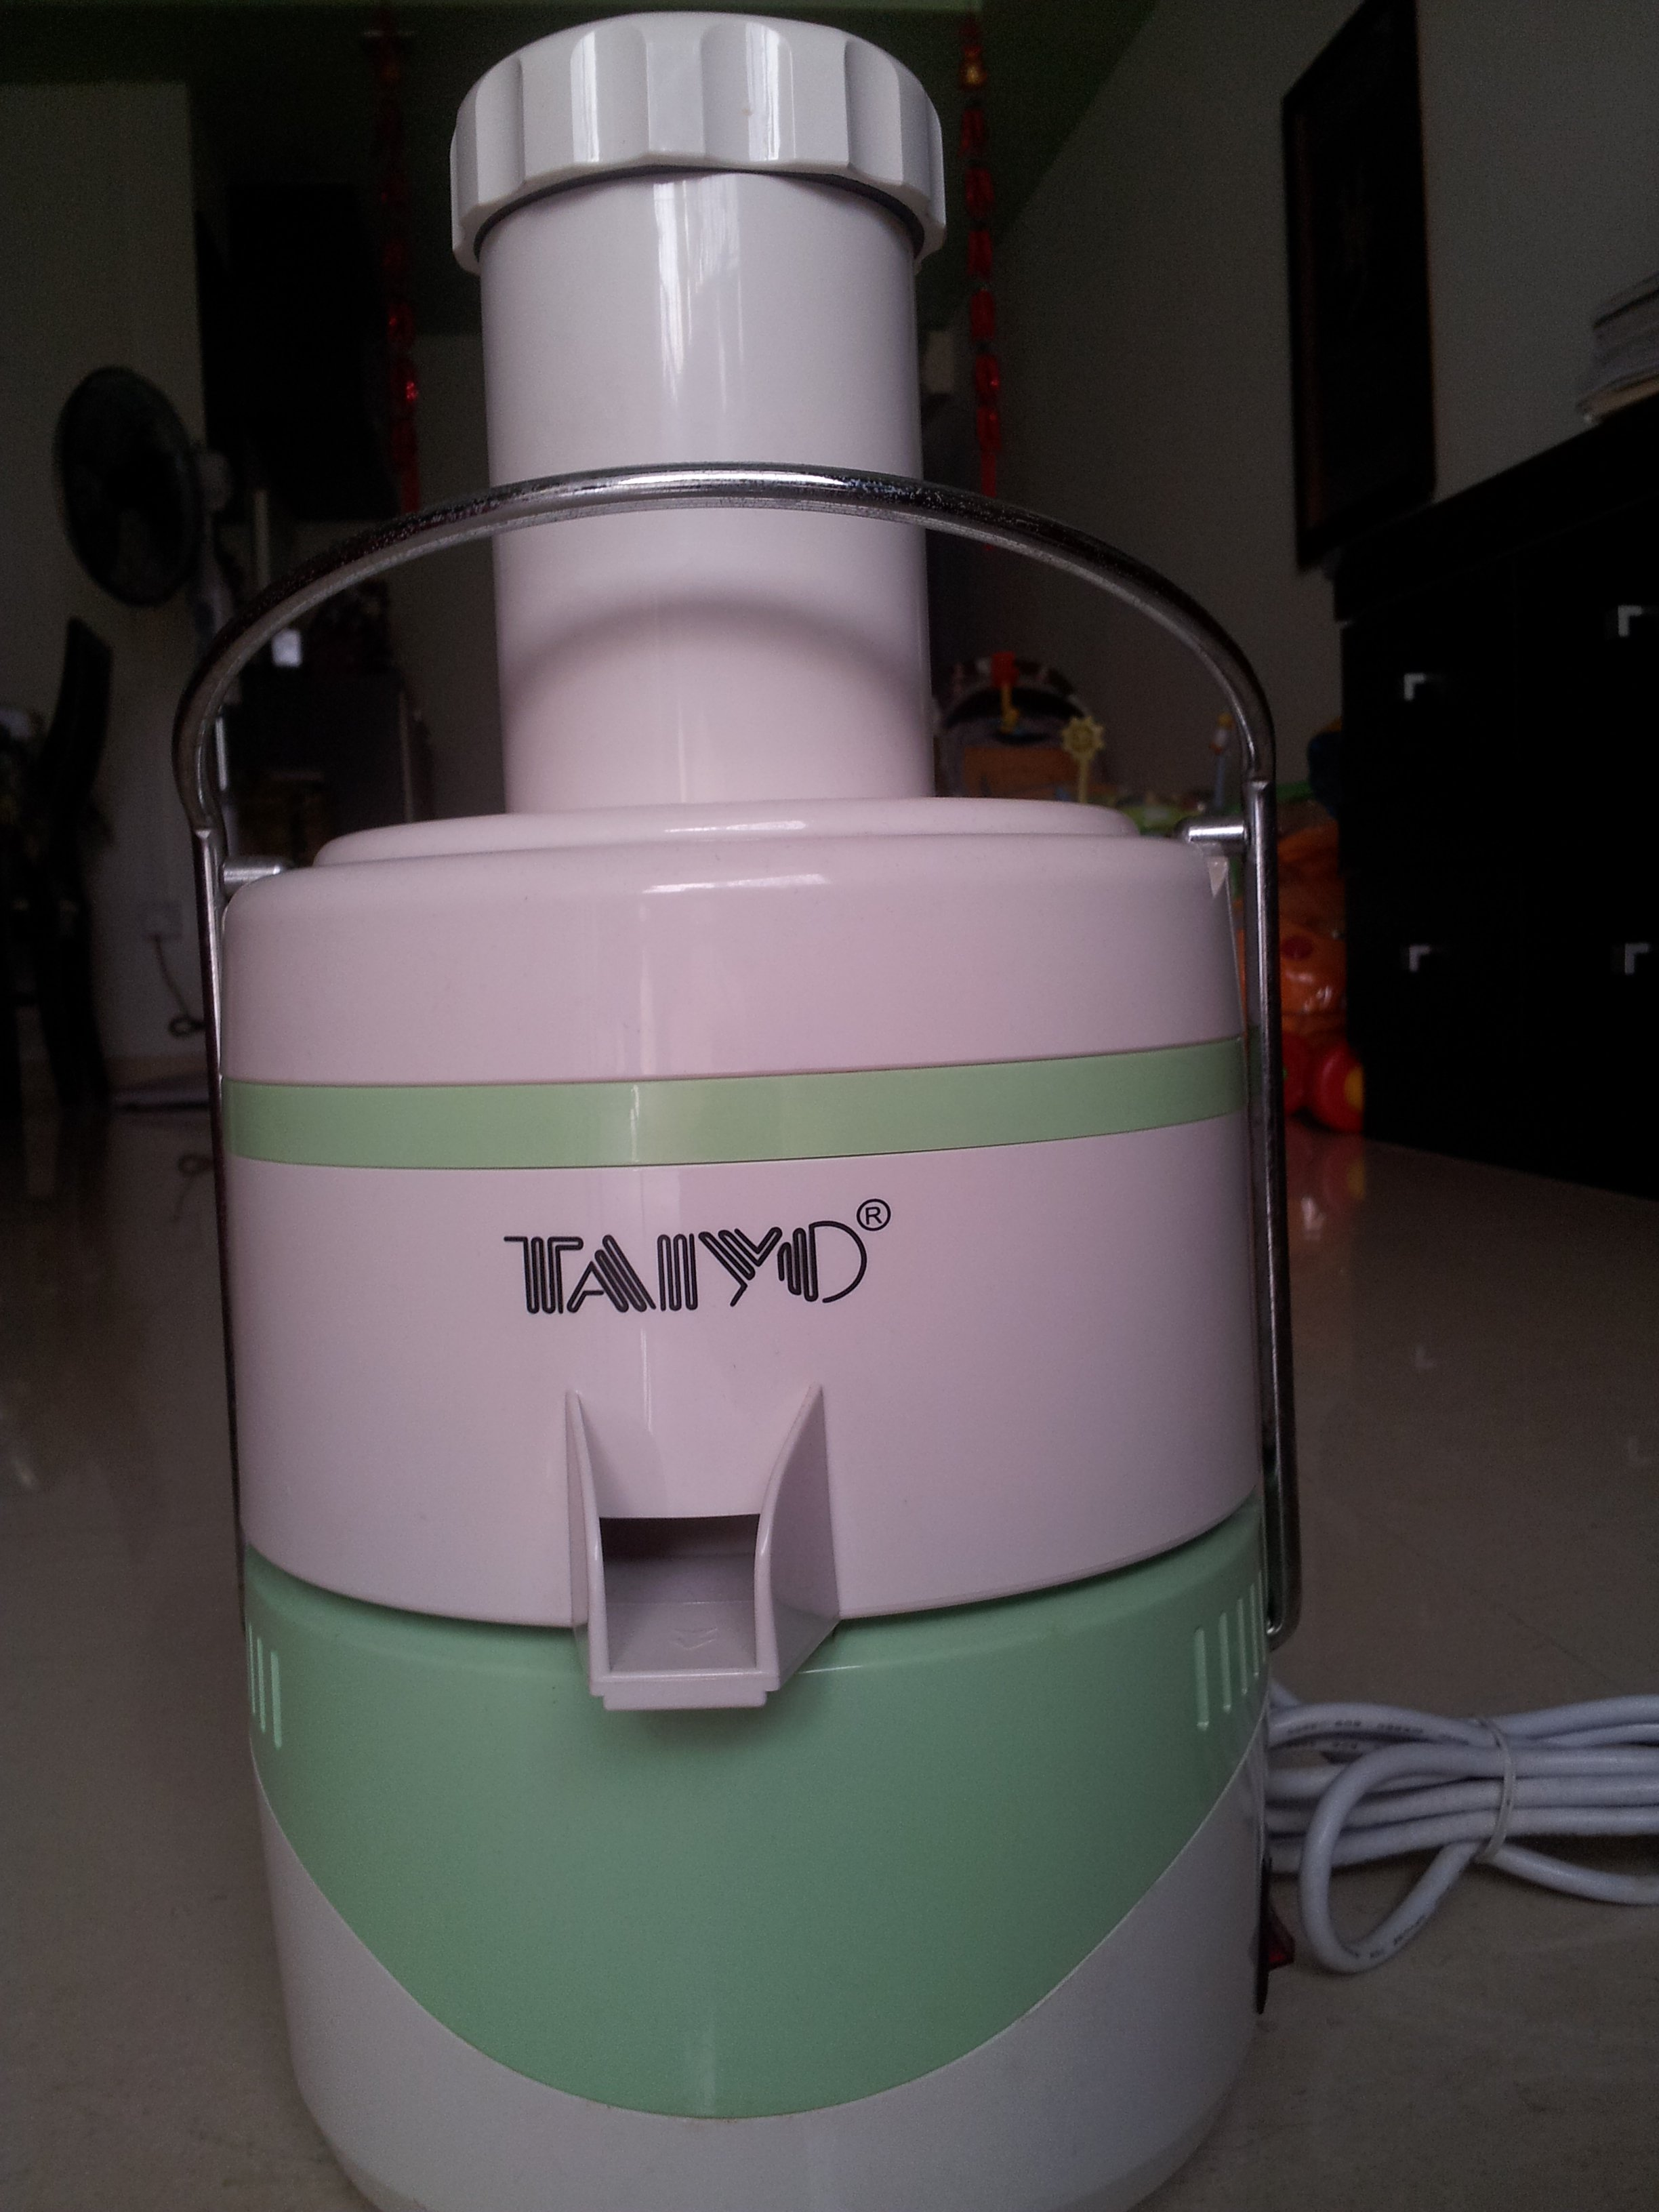 FOR SALE: Taiyo Juice Extractor cheap sale.